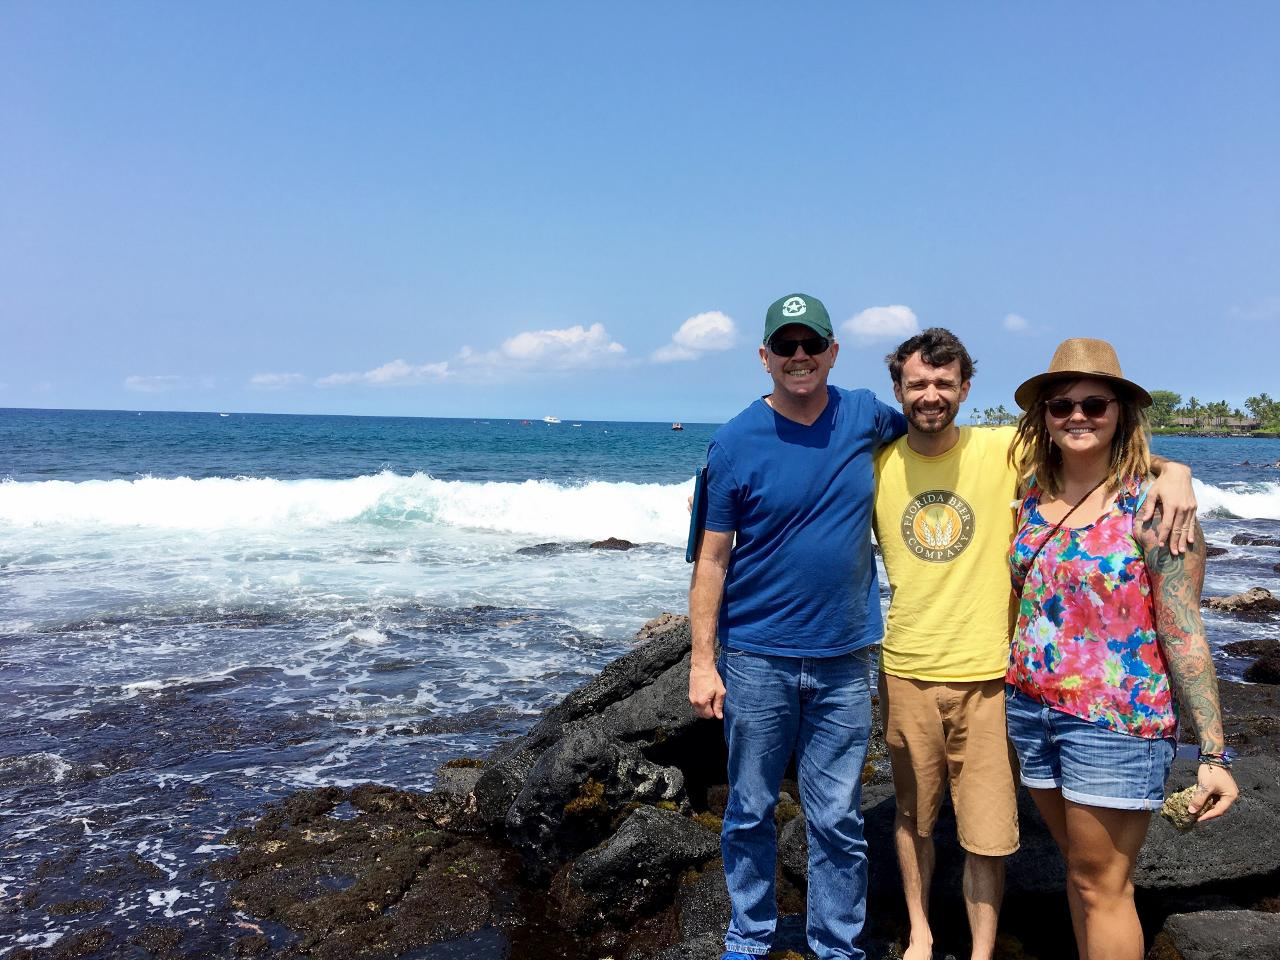 A few more pictures from Hawaii, thanks to my sister Tish. My son Cary, Jocelyn and their Uncle Jim.